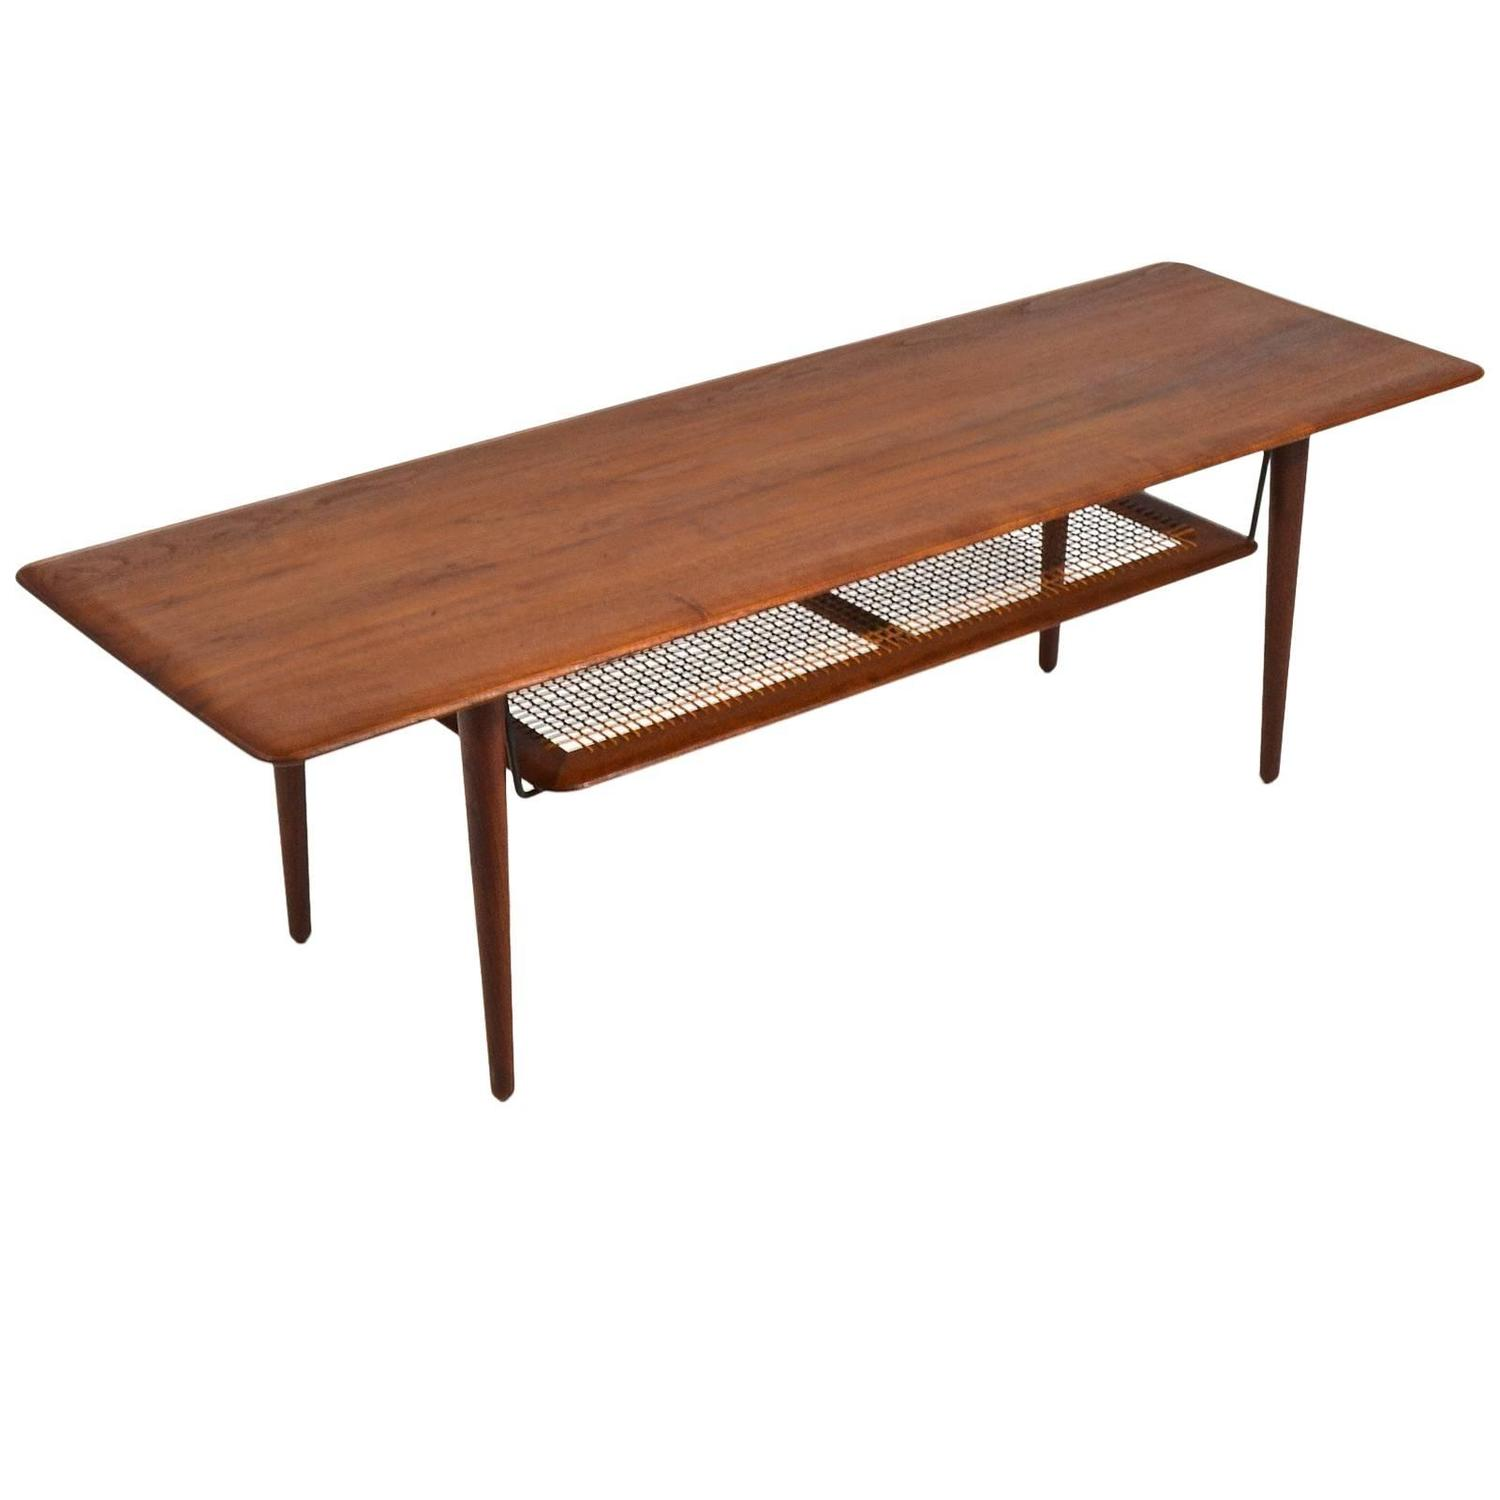 Peter Hvidt and Orla M¸lgaard Nielsen Coffee Table with Cane Shelf